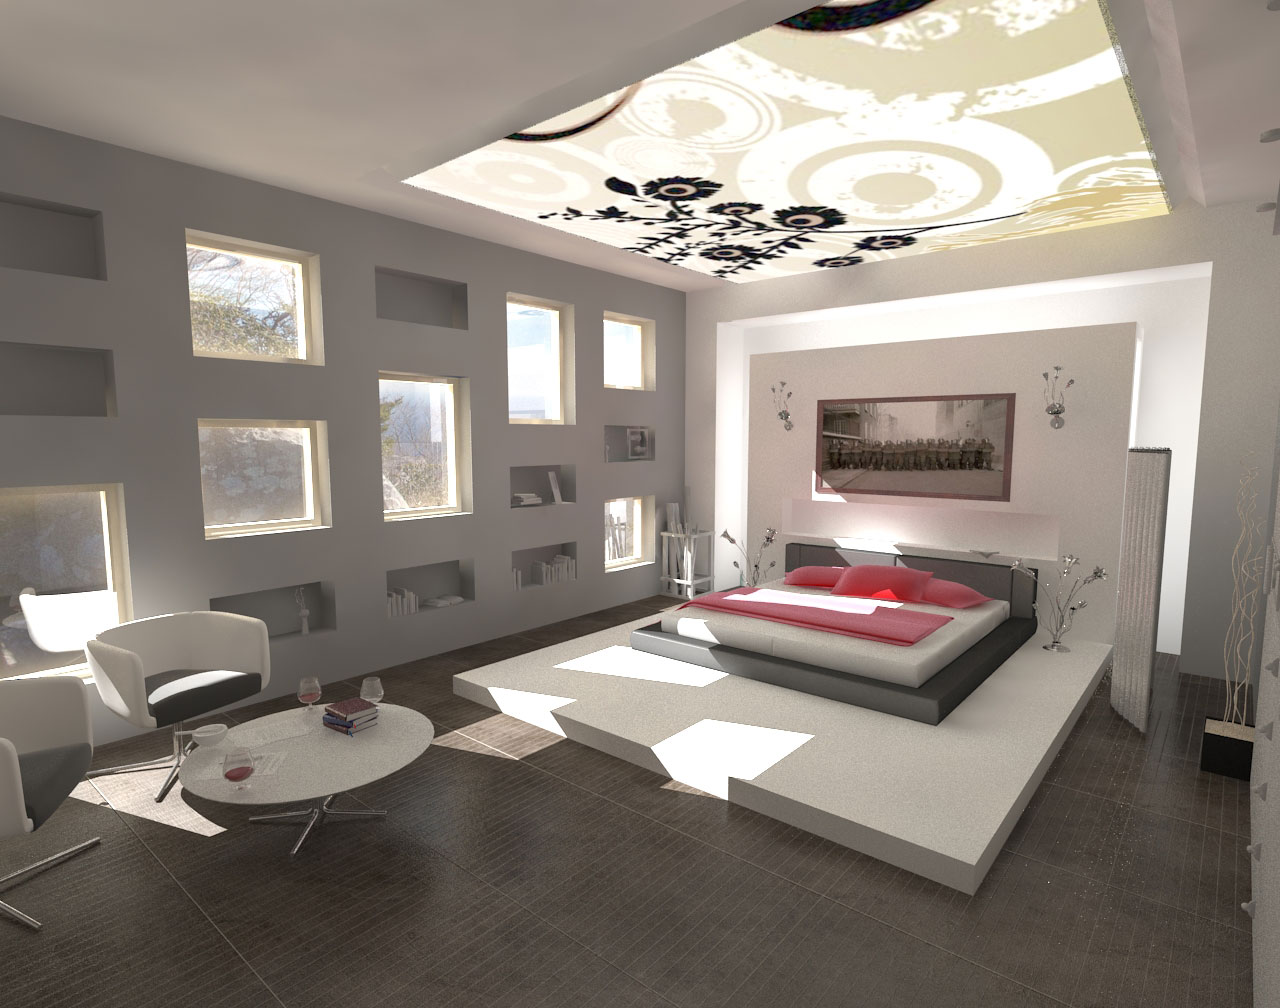 Decorations minimalist design modern bedroom interior for Modern minimalist style